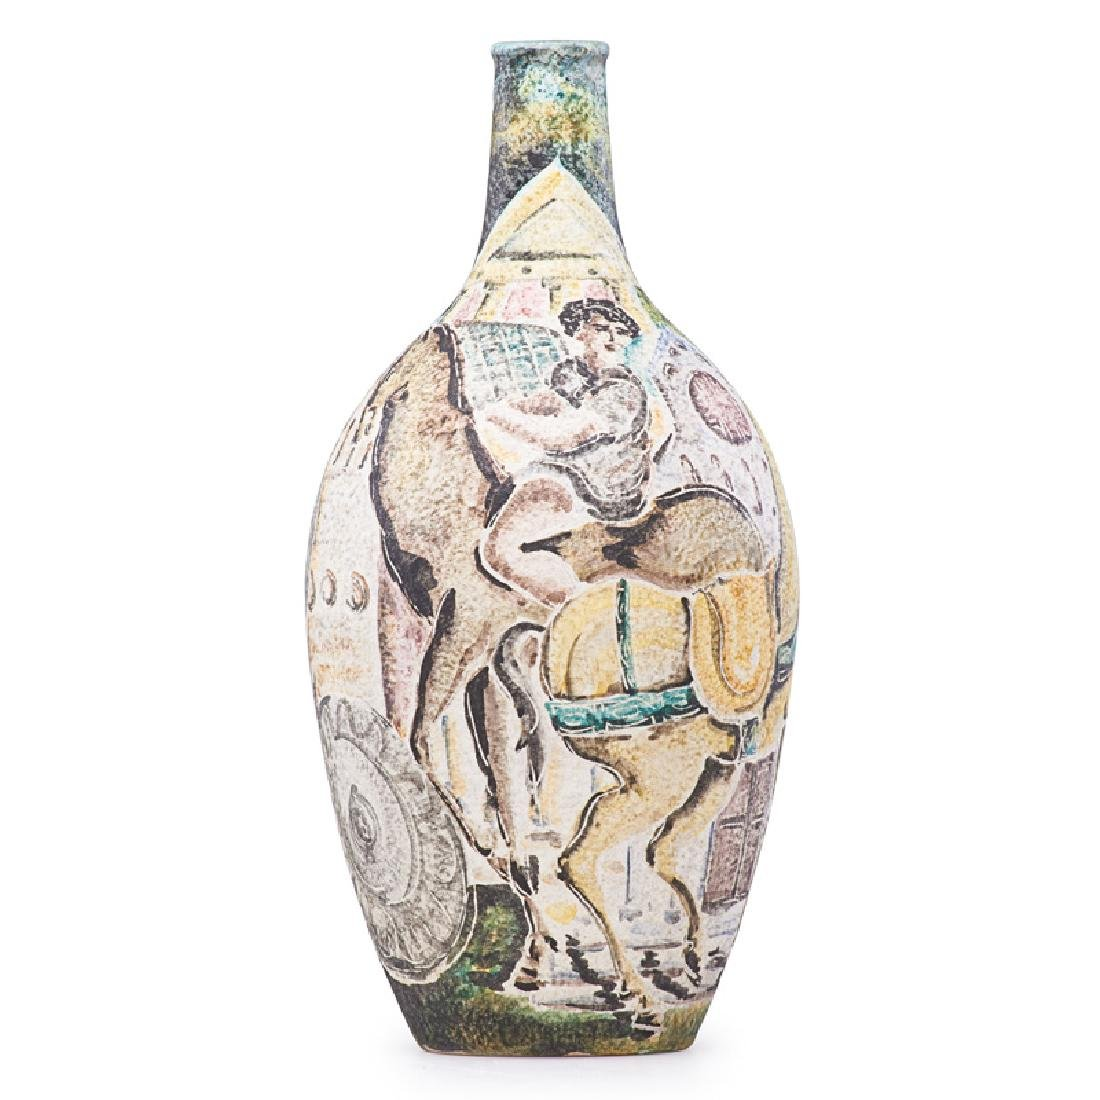 MARCELLO FANTONI Vase with Roman soldiers